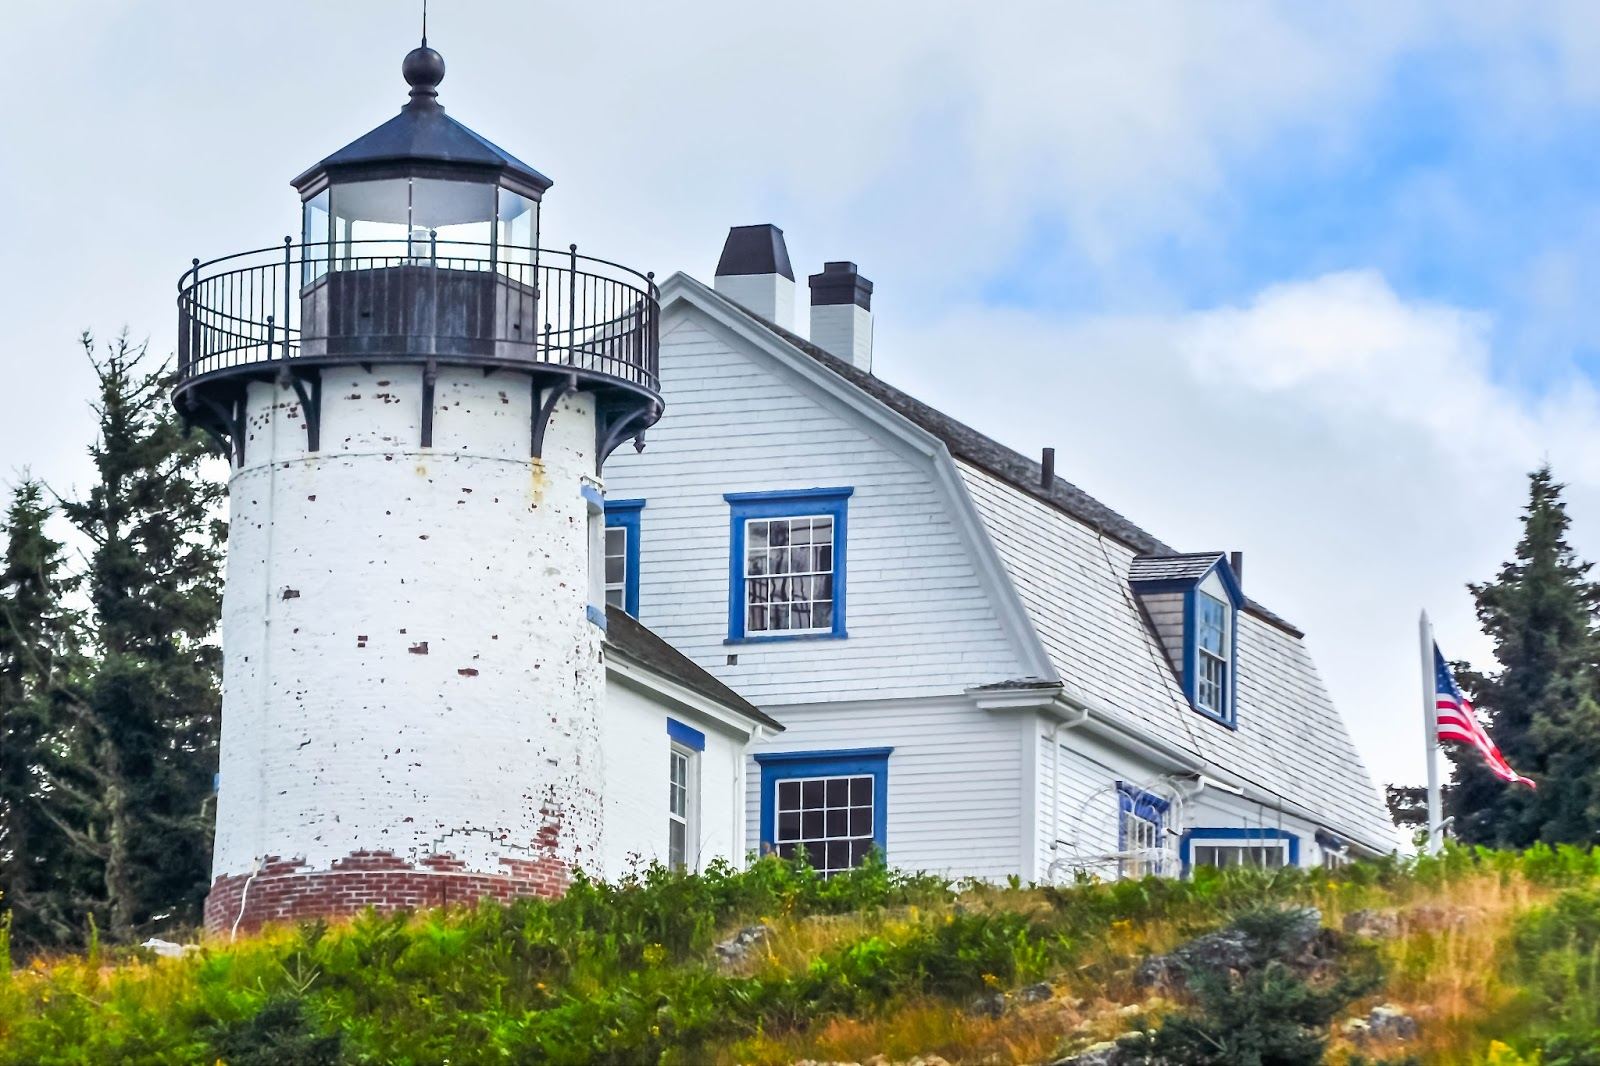 Cottage lighthouse lamp 3 colors - Bear Island Lighthouse Was Severely Damaged By Fire In 1852 And Rebuilt In 1853 Experience Proved That The Original Design Put Too Much Stress On The